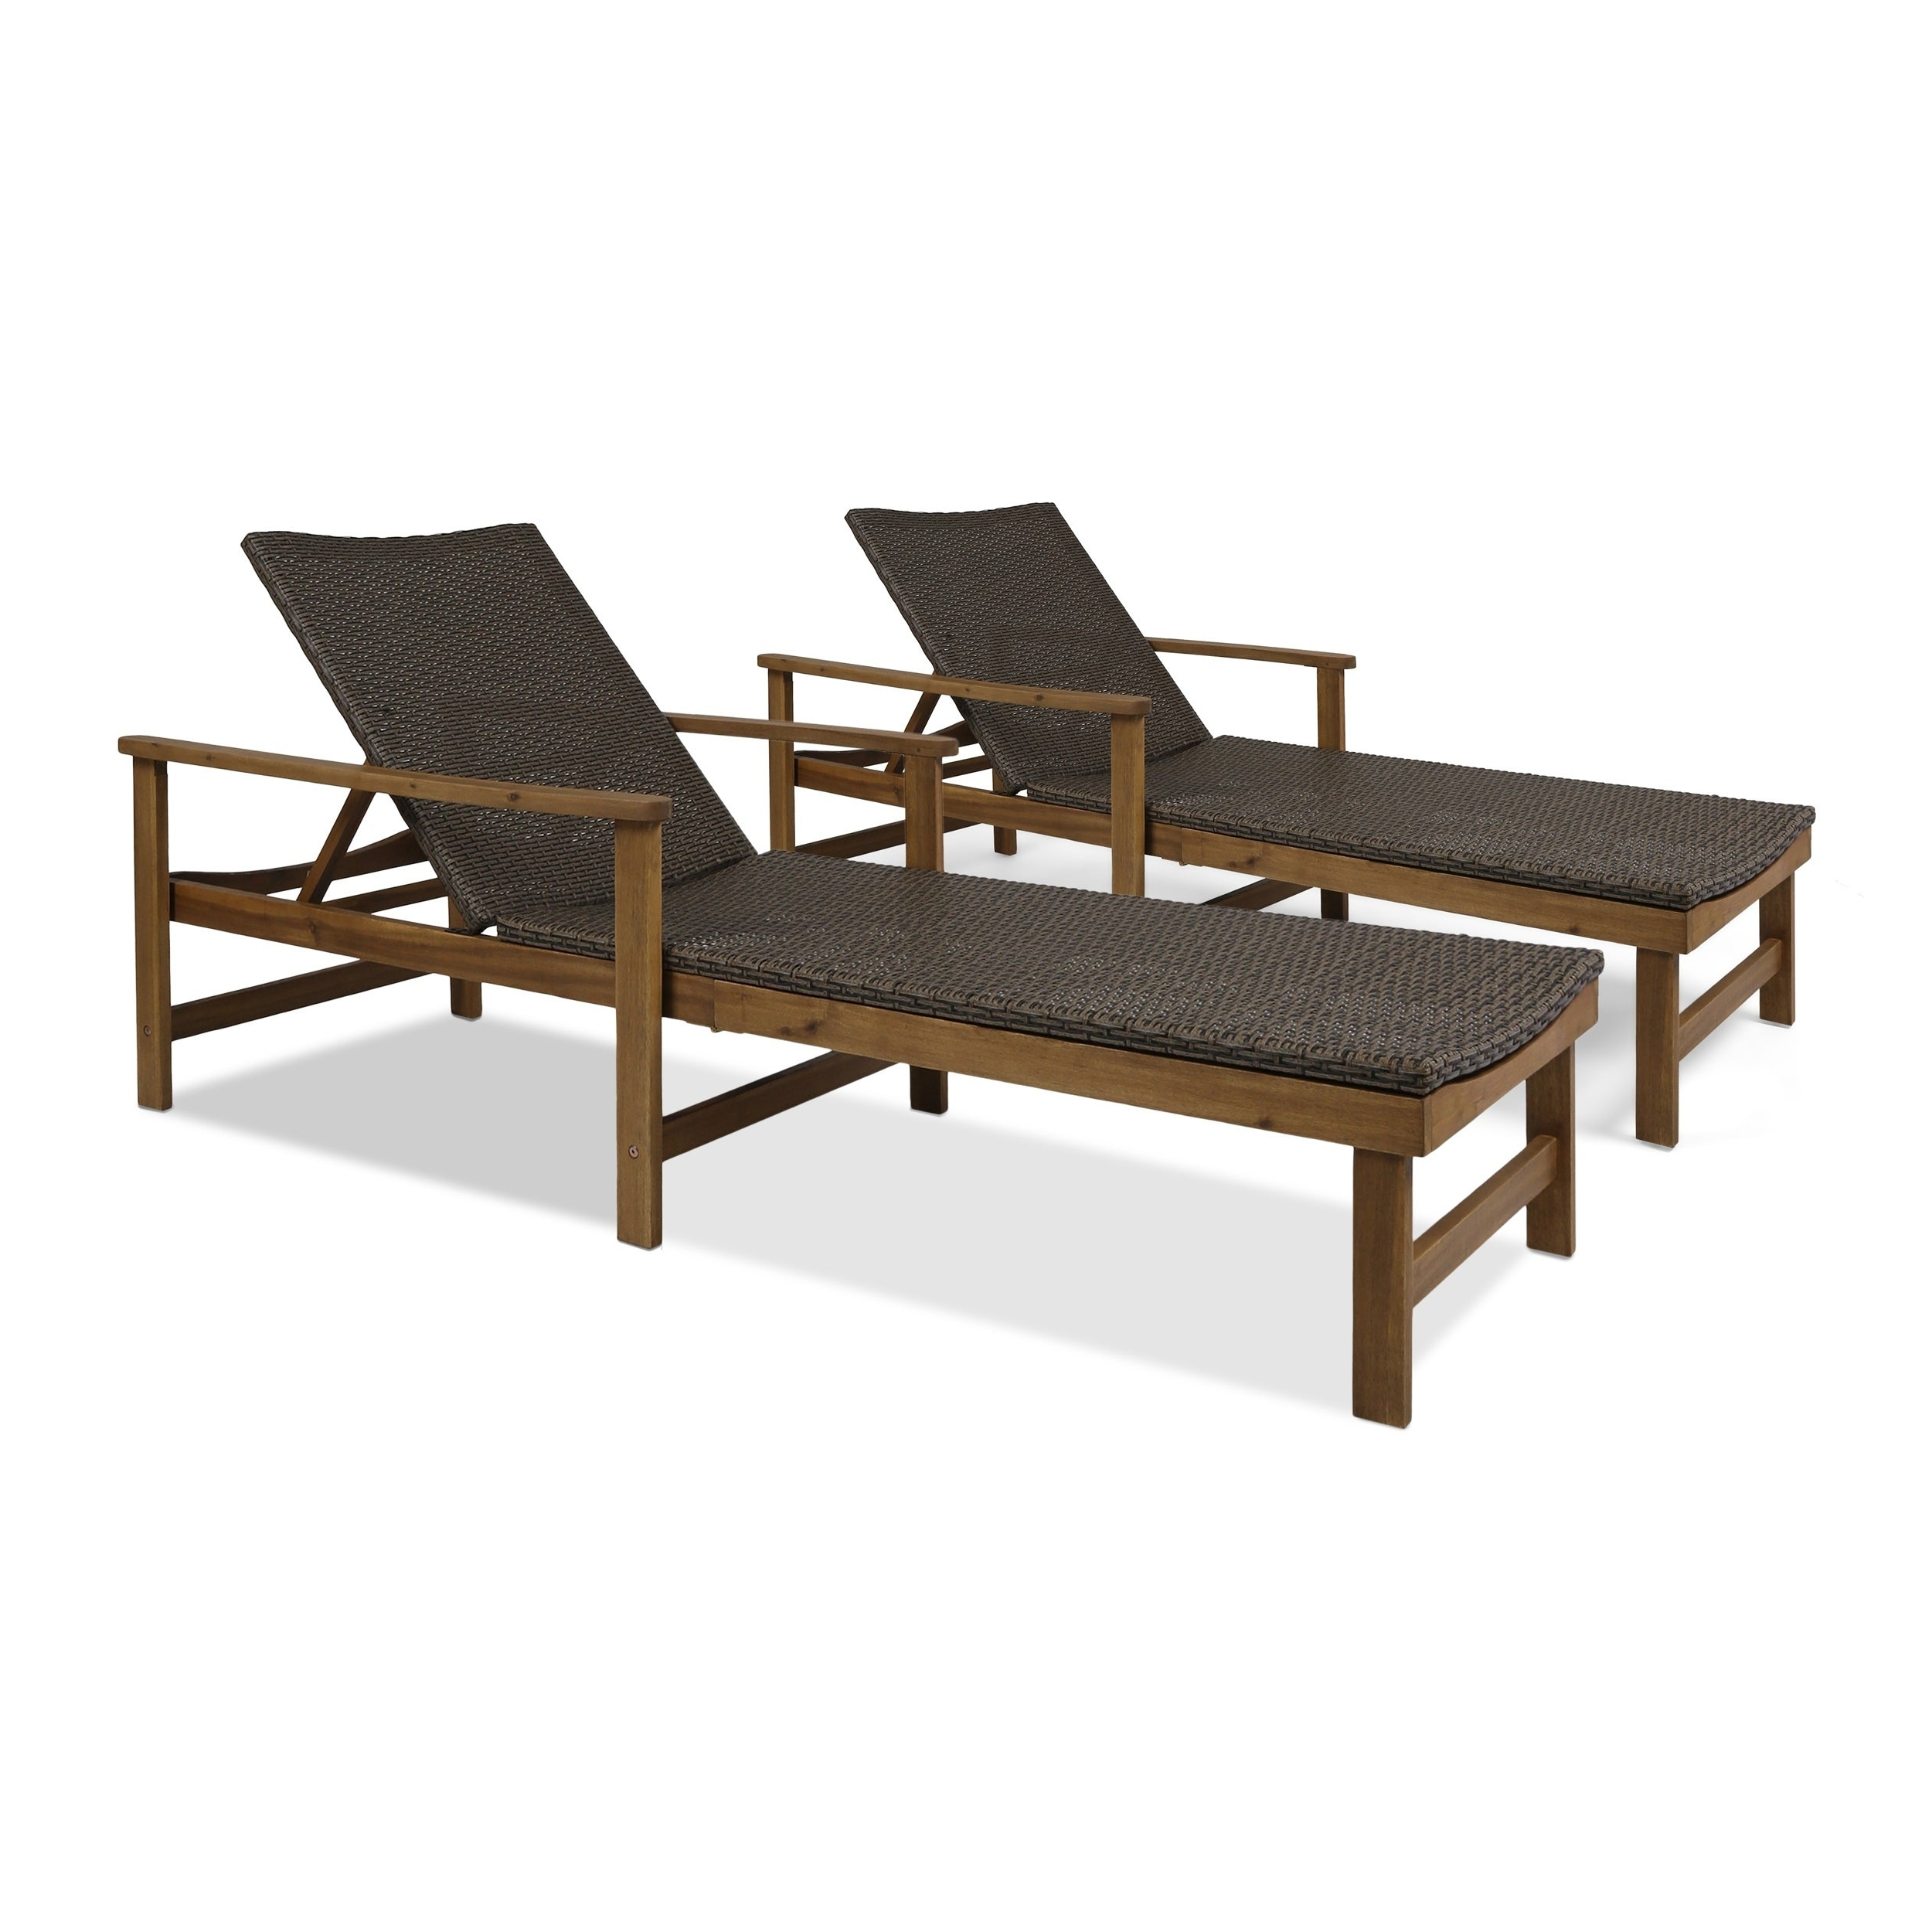 Outdoor Rustic Acacia Wood Chaise Lounges With Wicker Seats With Newest Hampton Outdoor Chaise Lounges Acacia Wood And Wicker (set Of 2) Christopher Knight Home (Gallery 6 of 25)